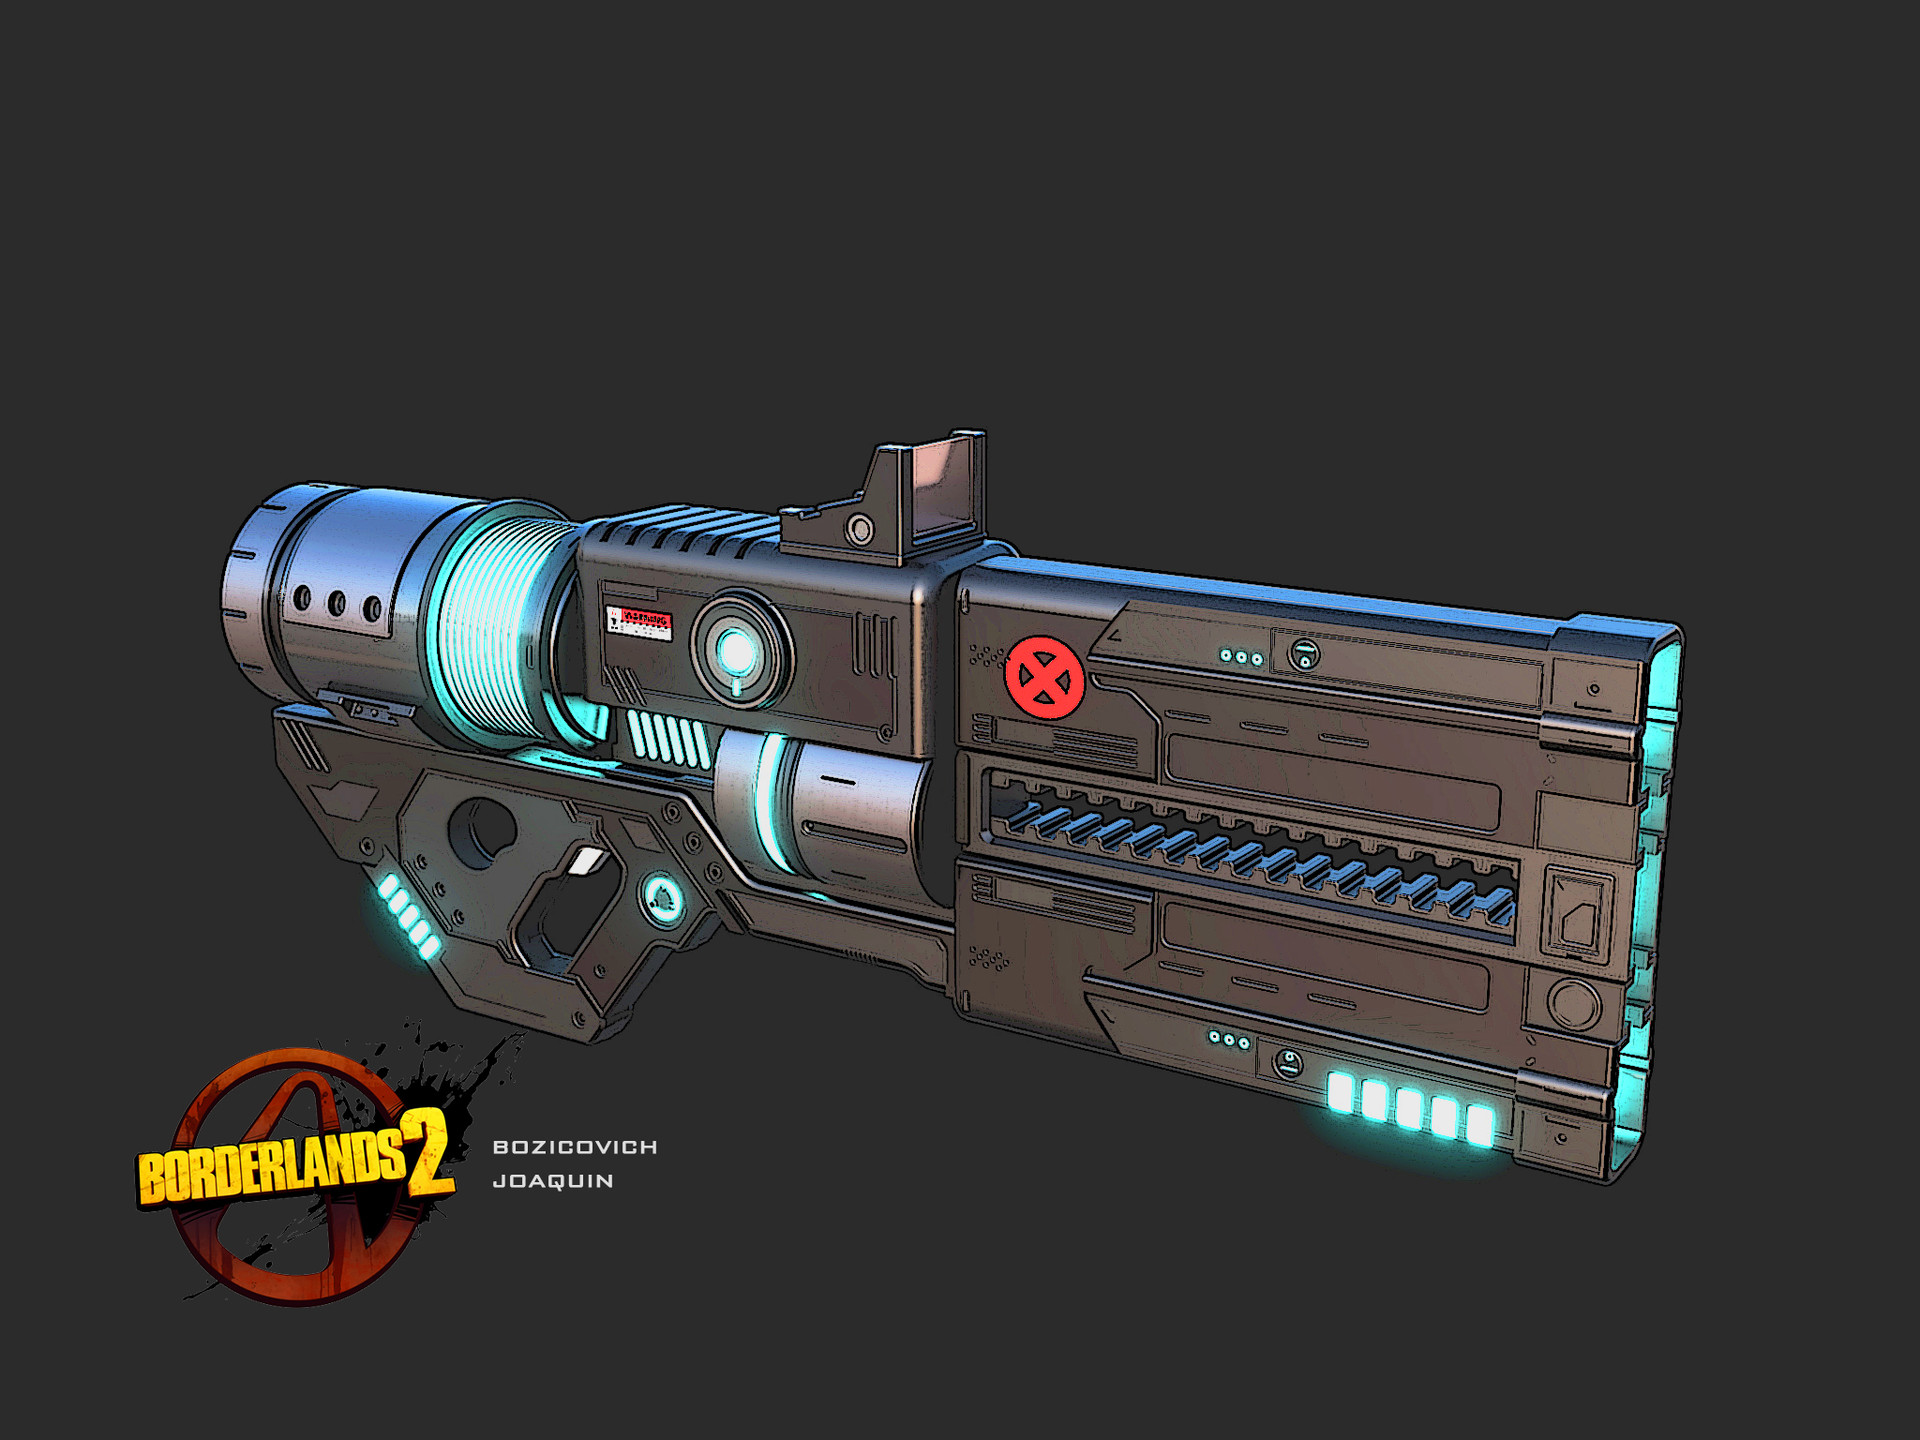 ArtStation - Bordelands 2 Concept art gun, Joaquin bozicovich